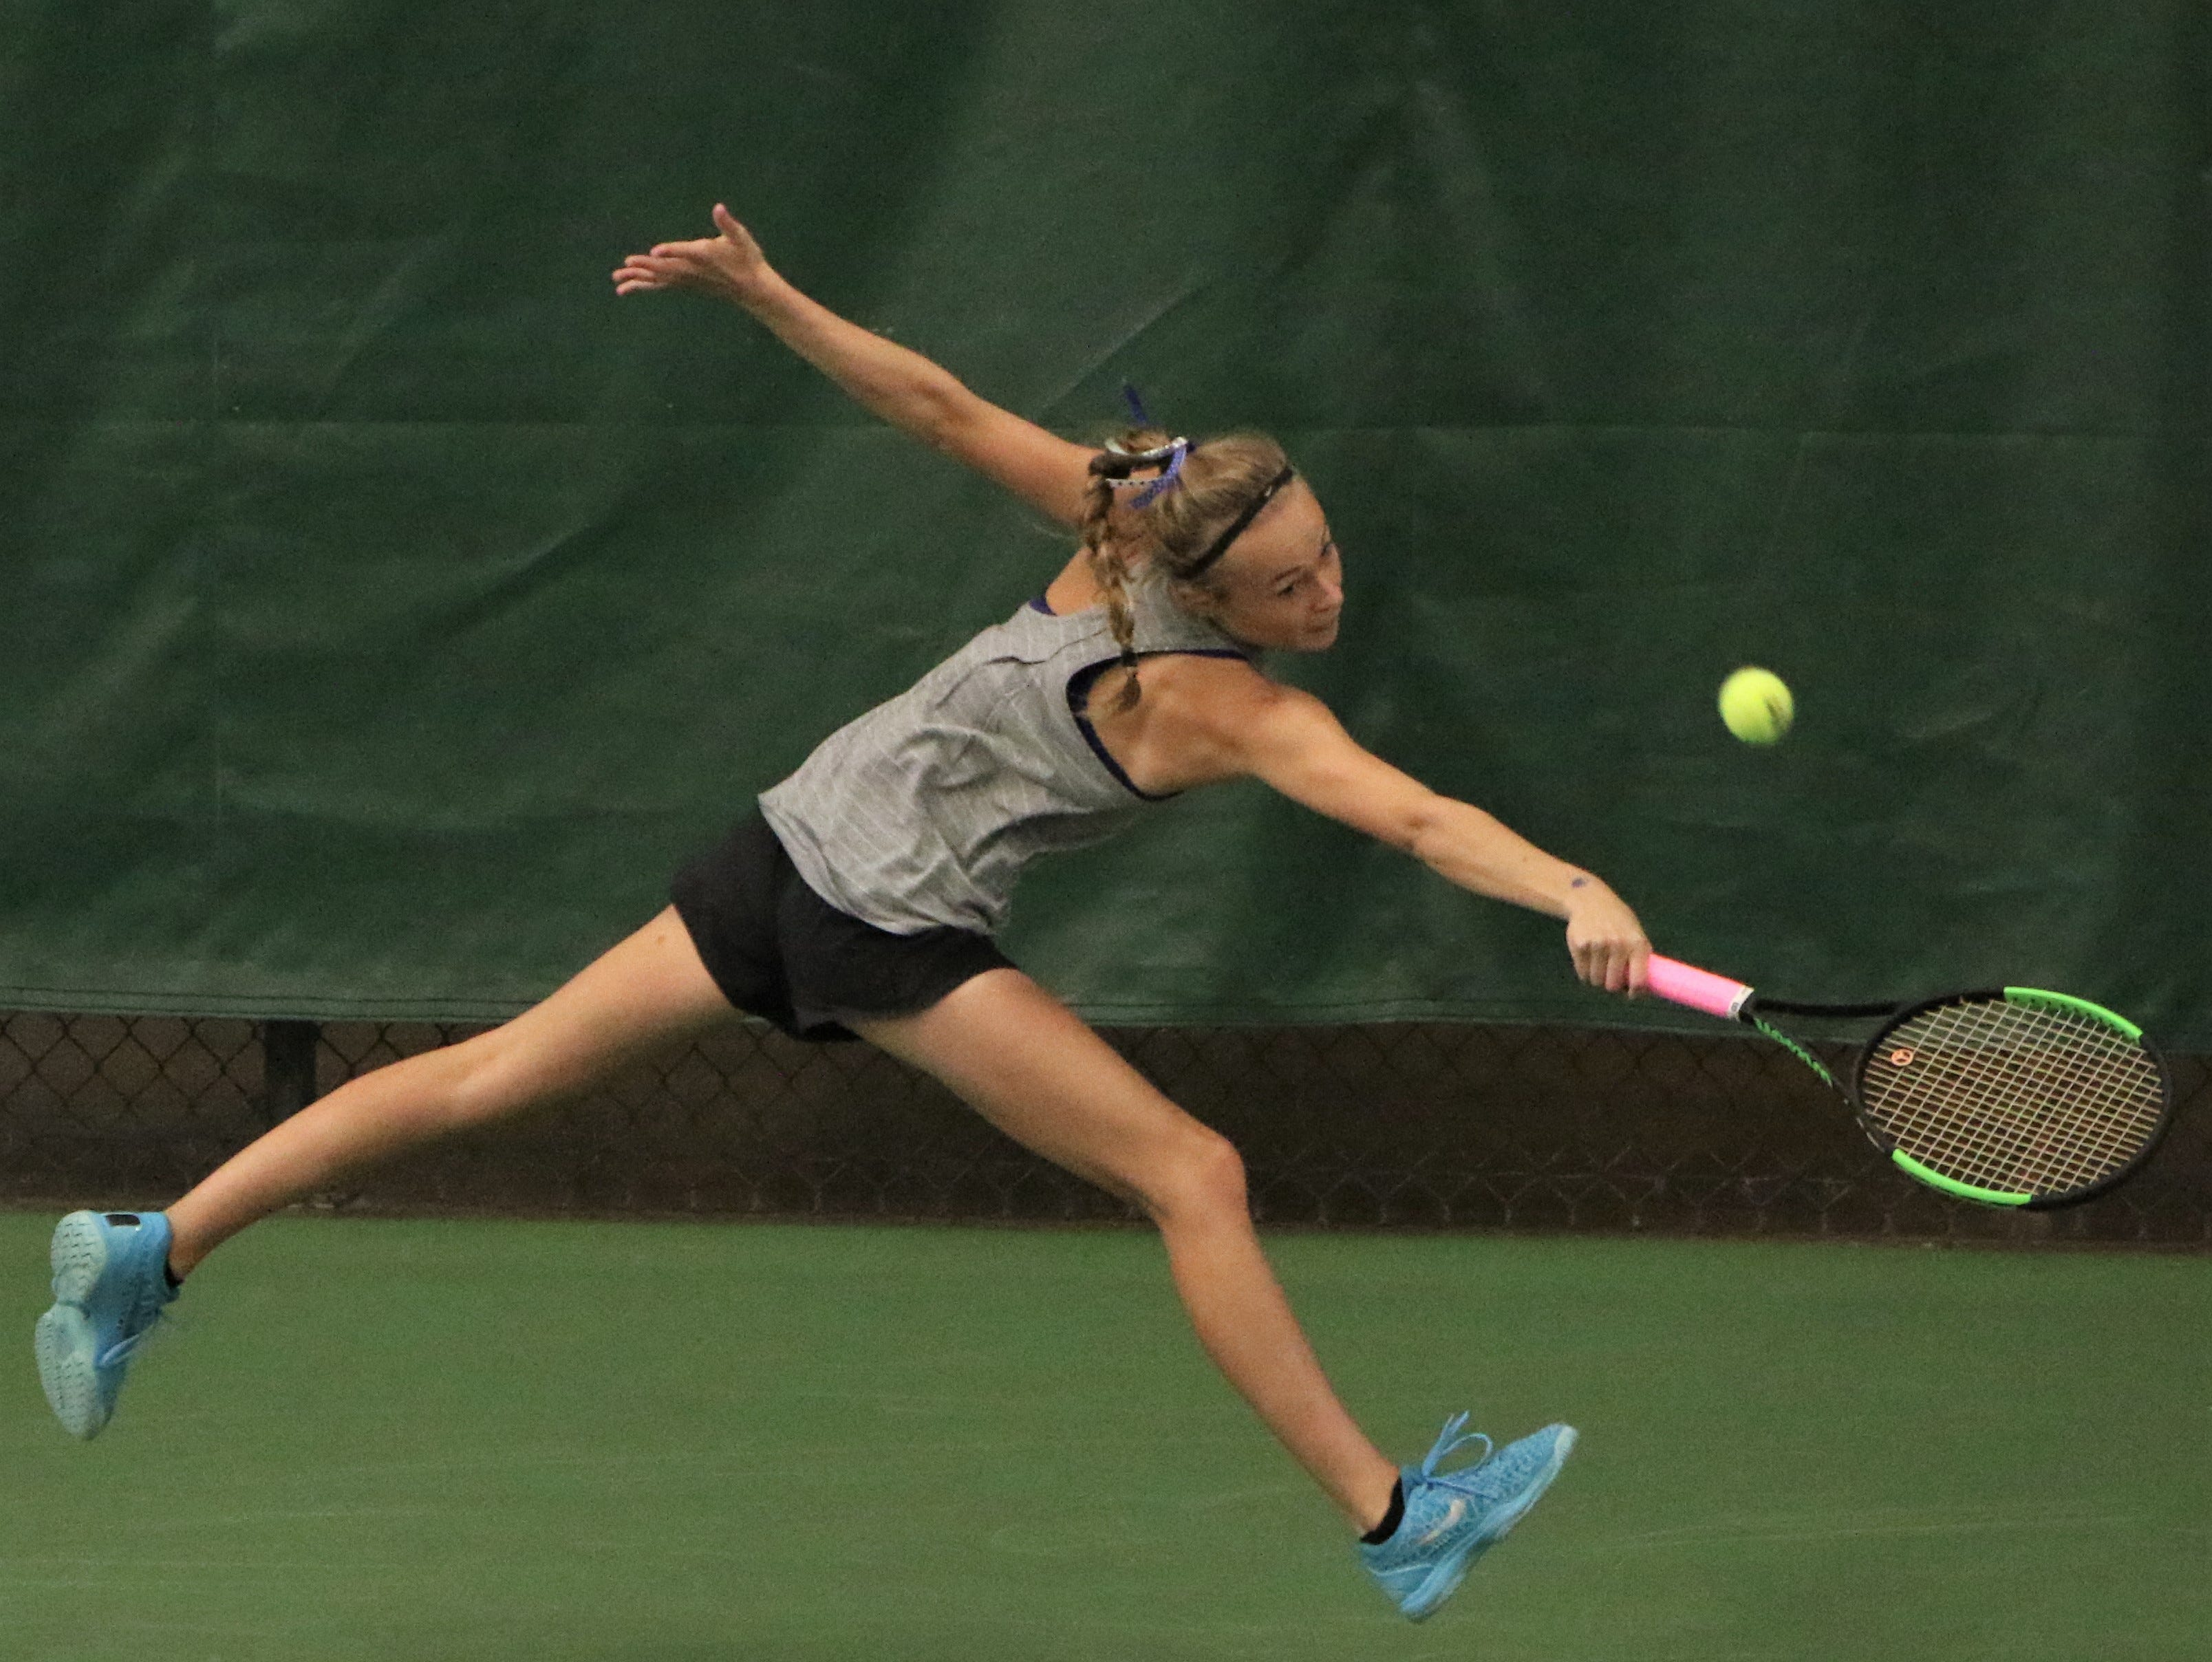 Waukesha West's Molly Asfeld reaches for a backhand shot during a match at the WIAA state individual tennis tournament on October 11.